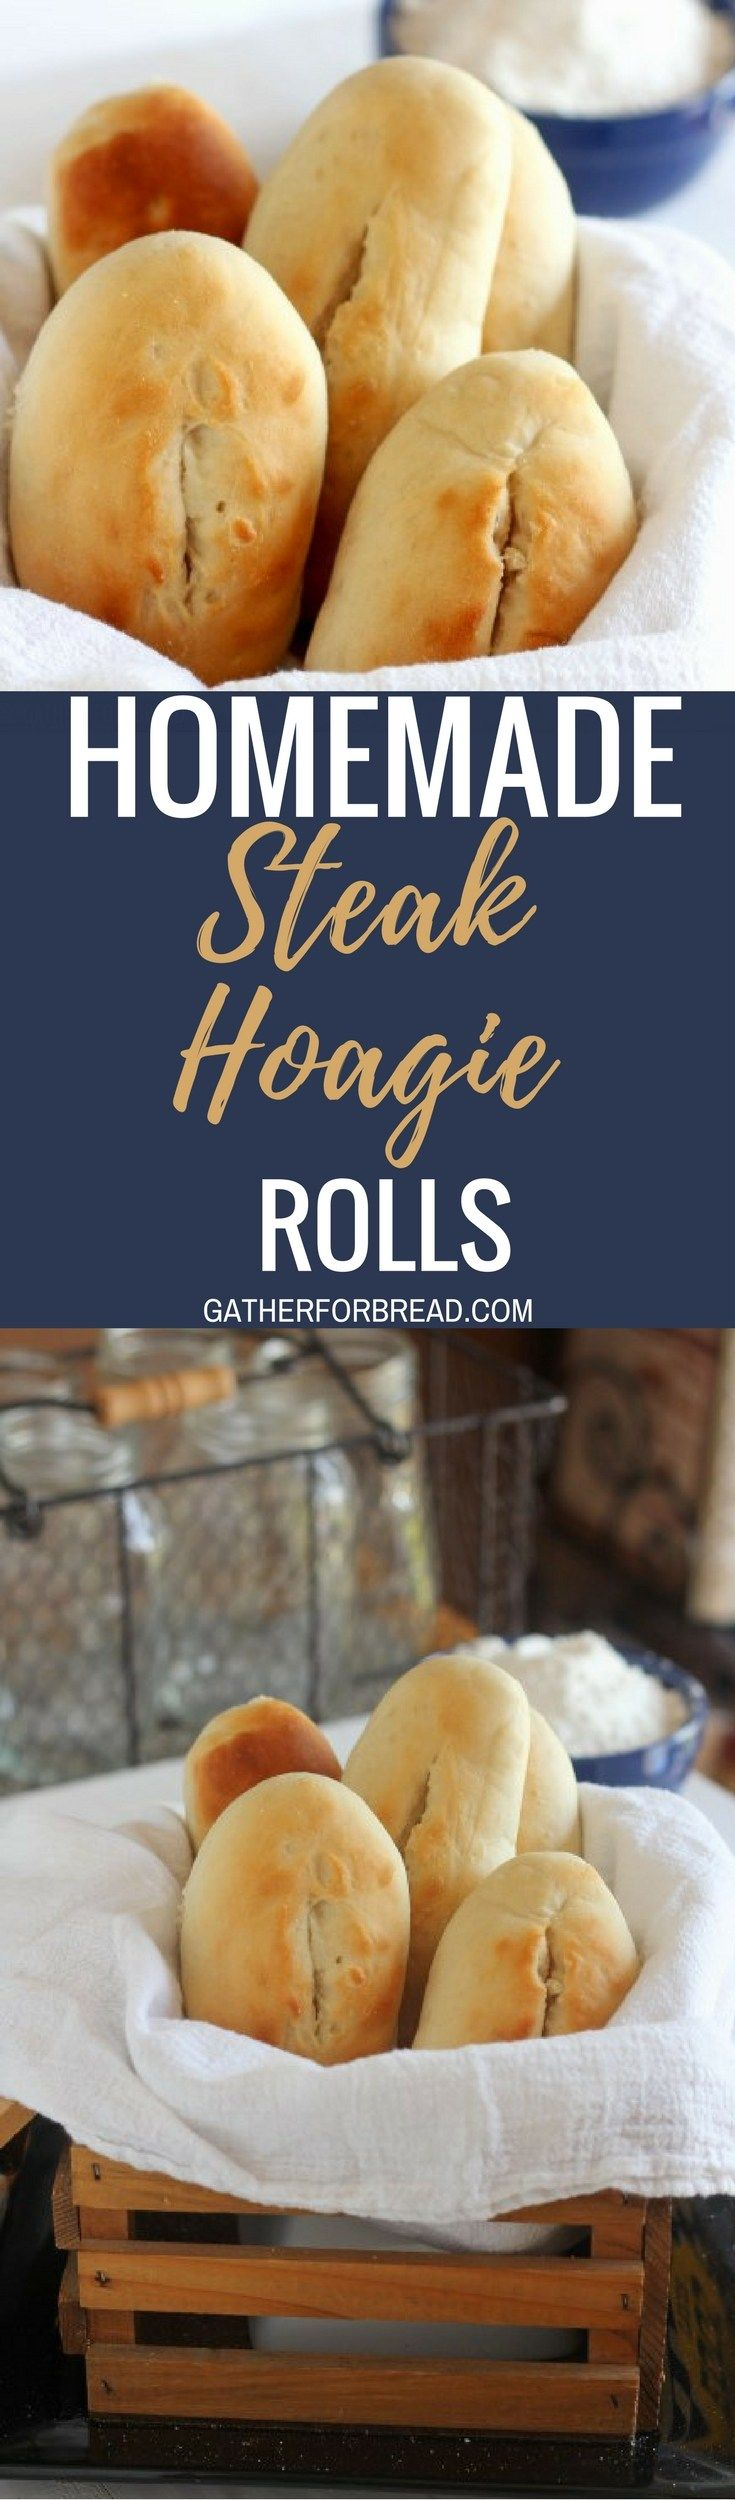 Homemade Steak Hoagie Rolls Recipe - (gatherforbread)